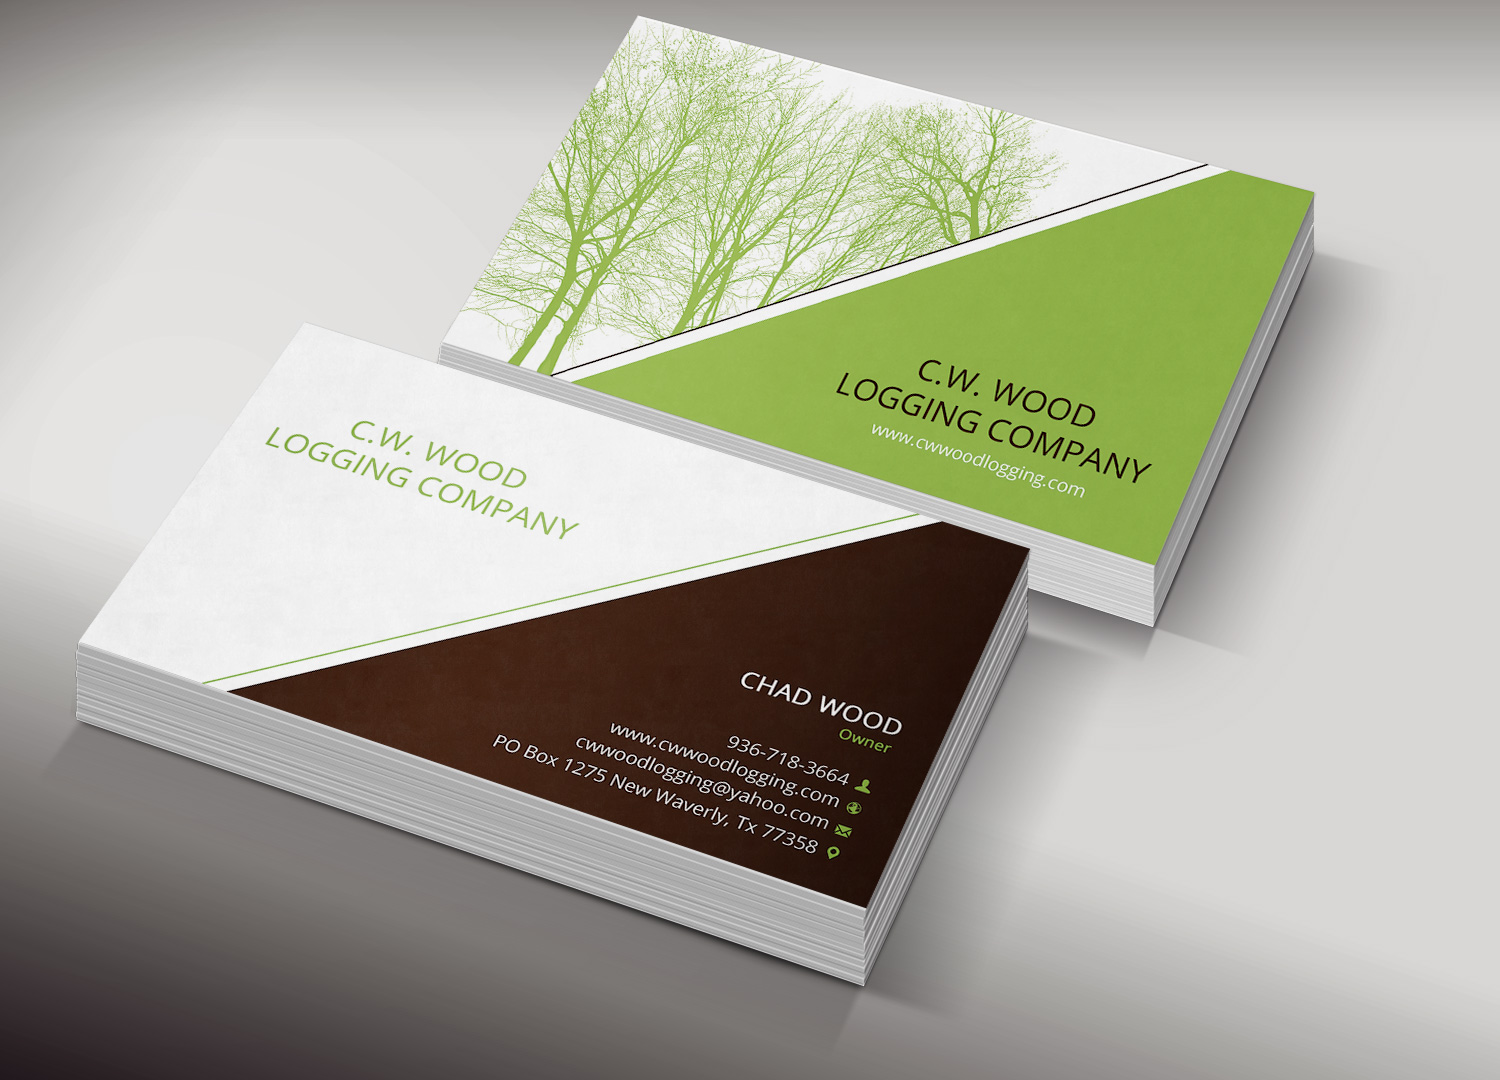 Business cards wood green choice image card design and for Logging business cards